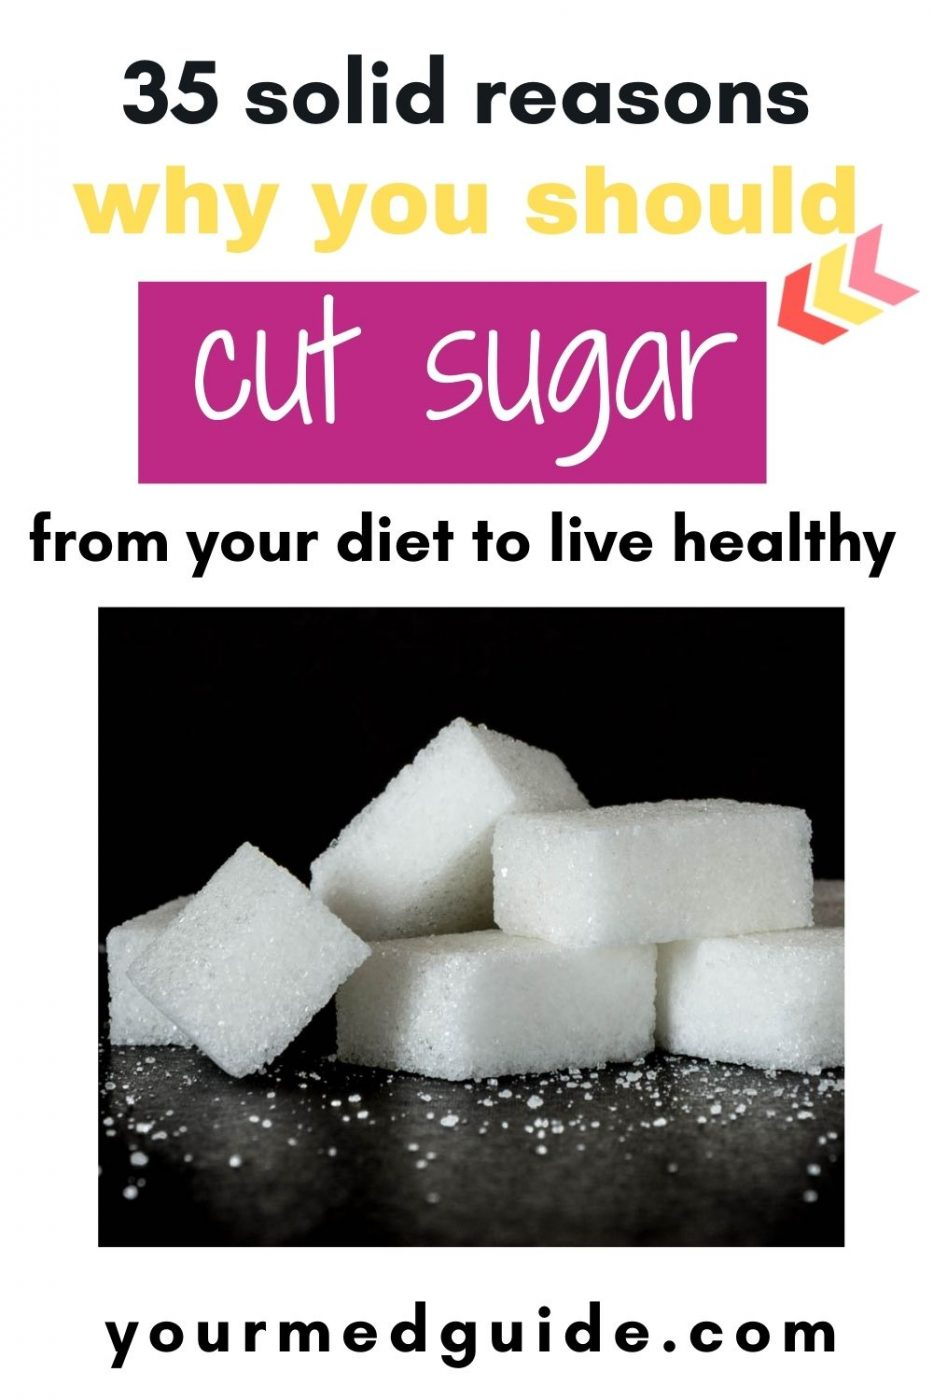 35 solid reasons why you should cut sugar from your diet to live healthy